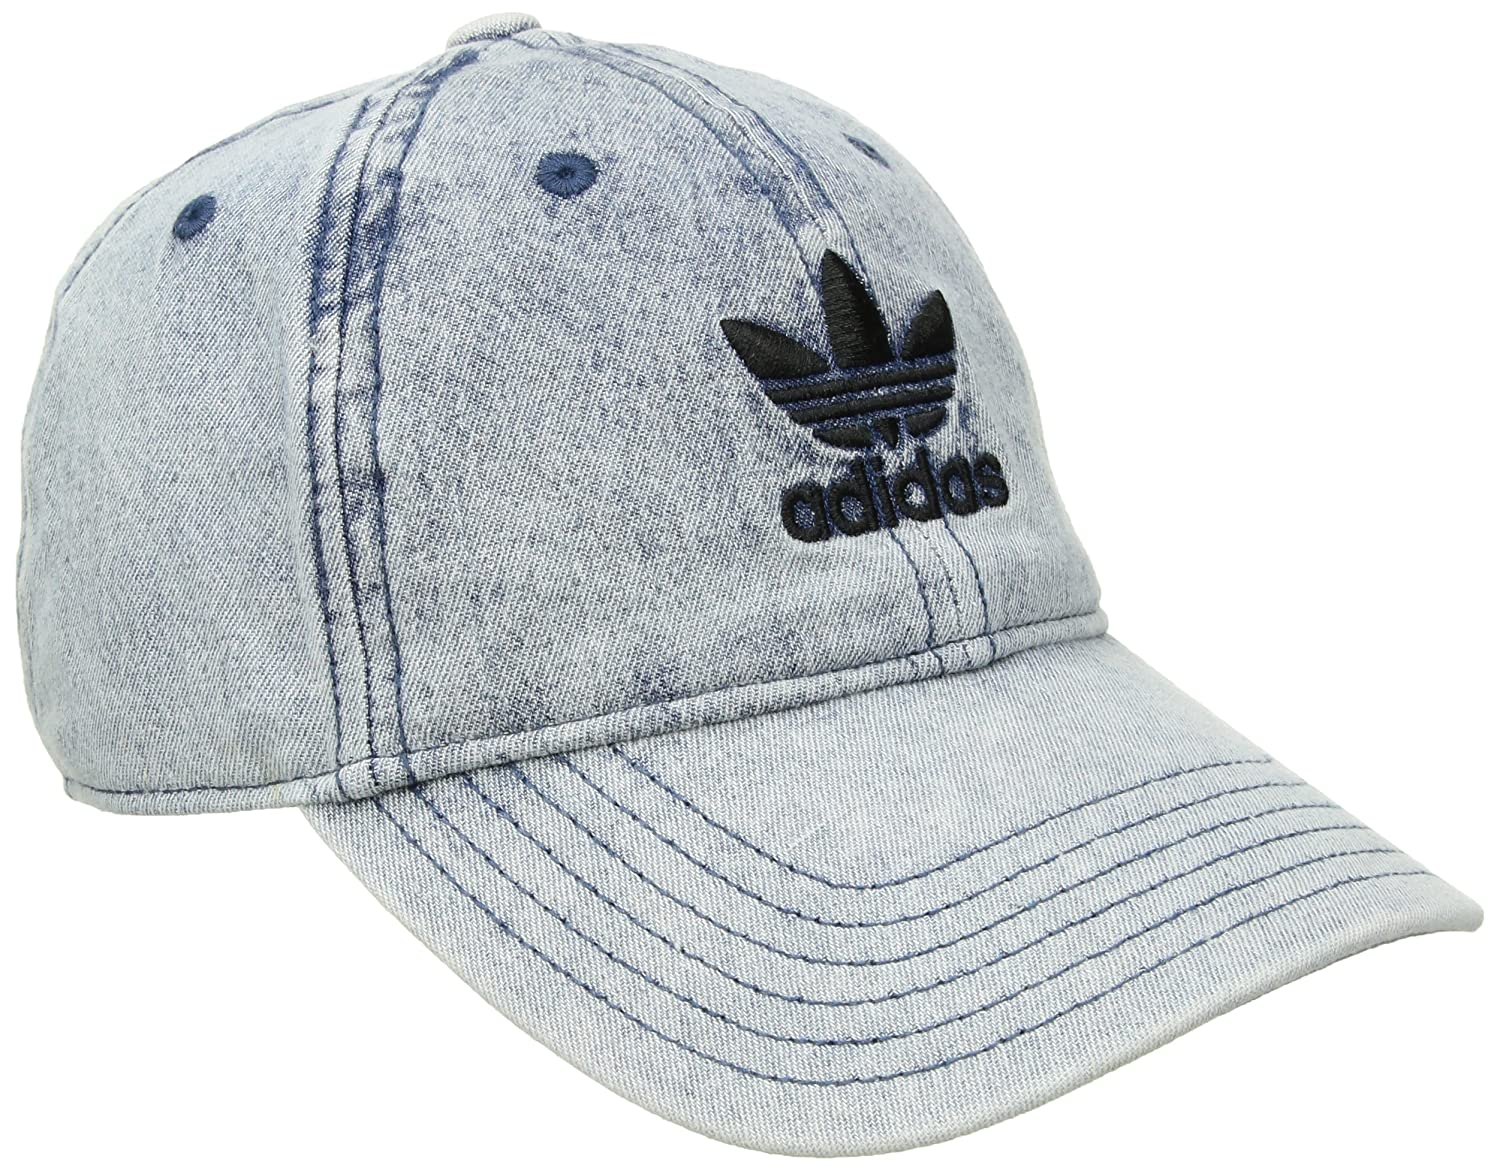 3aebaa02e11c4 Adidas Women s Originals Relaxed Adjustable Strapback Cap